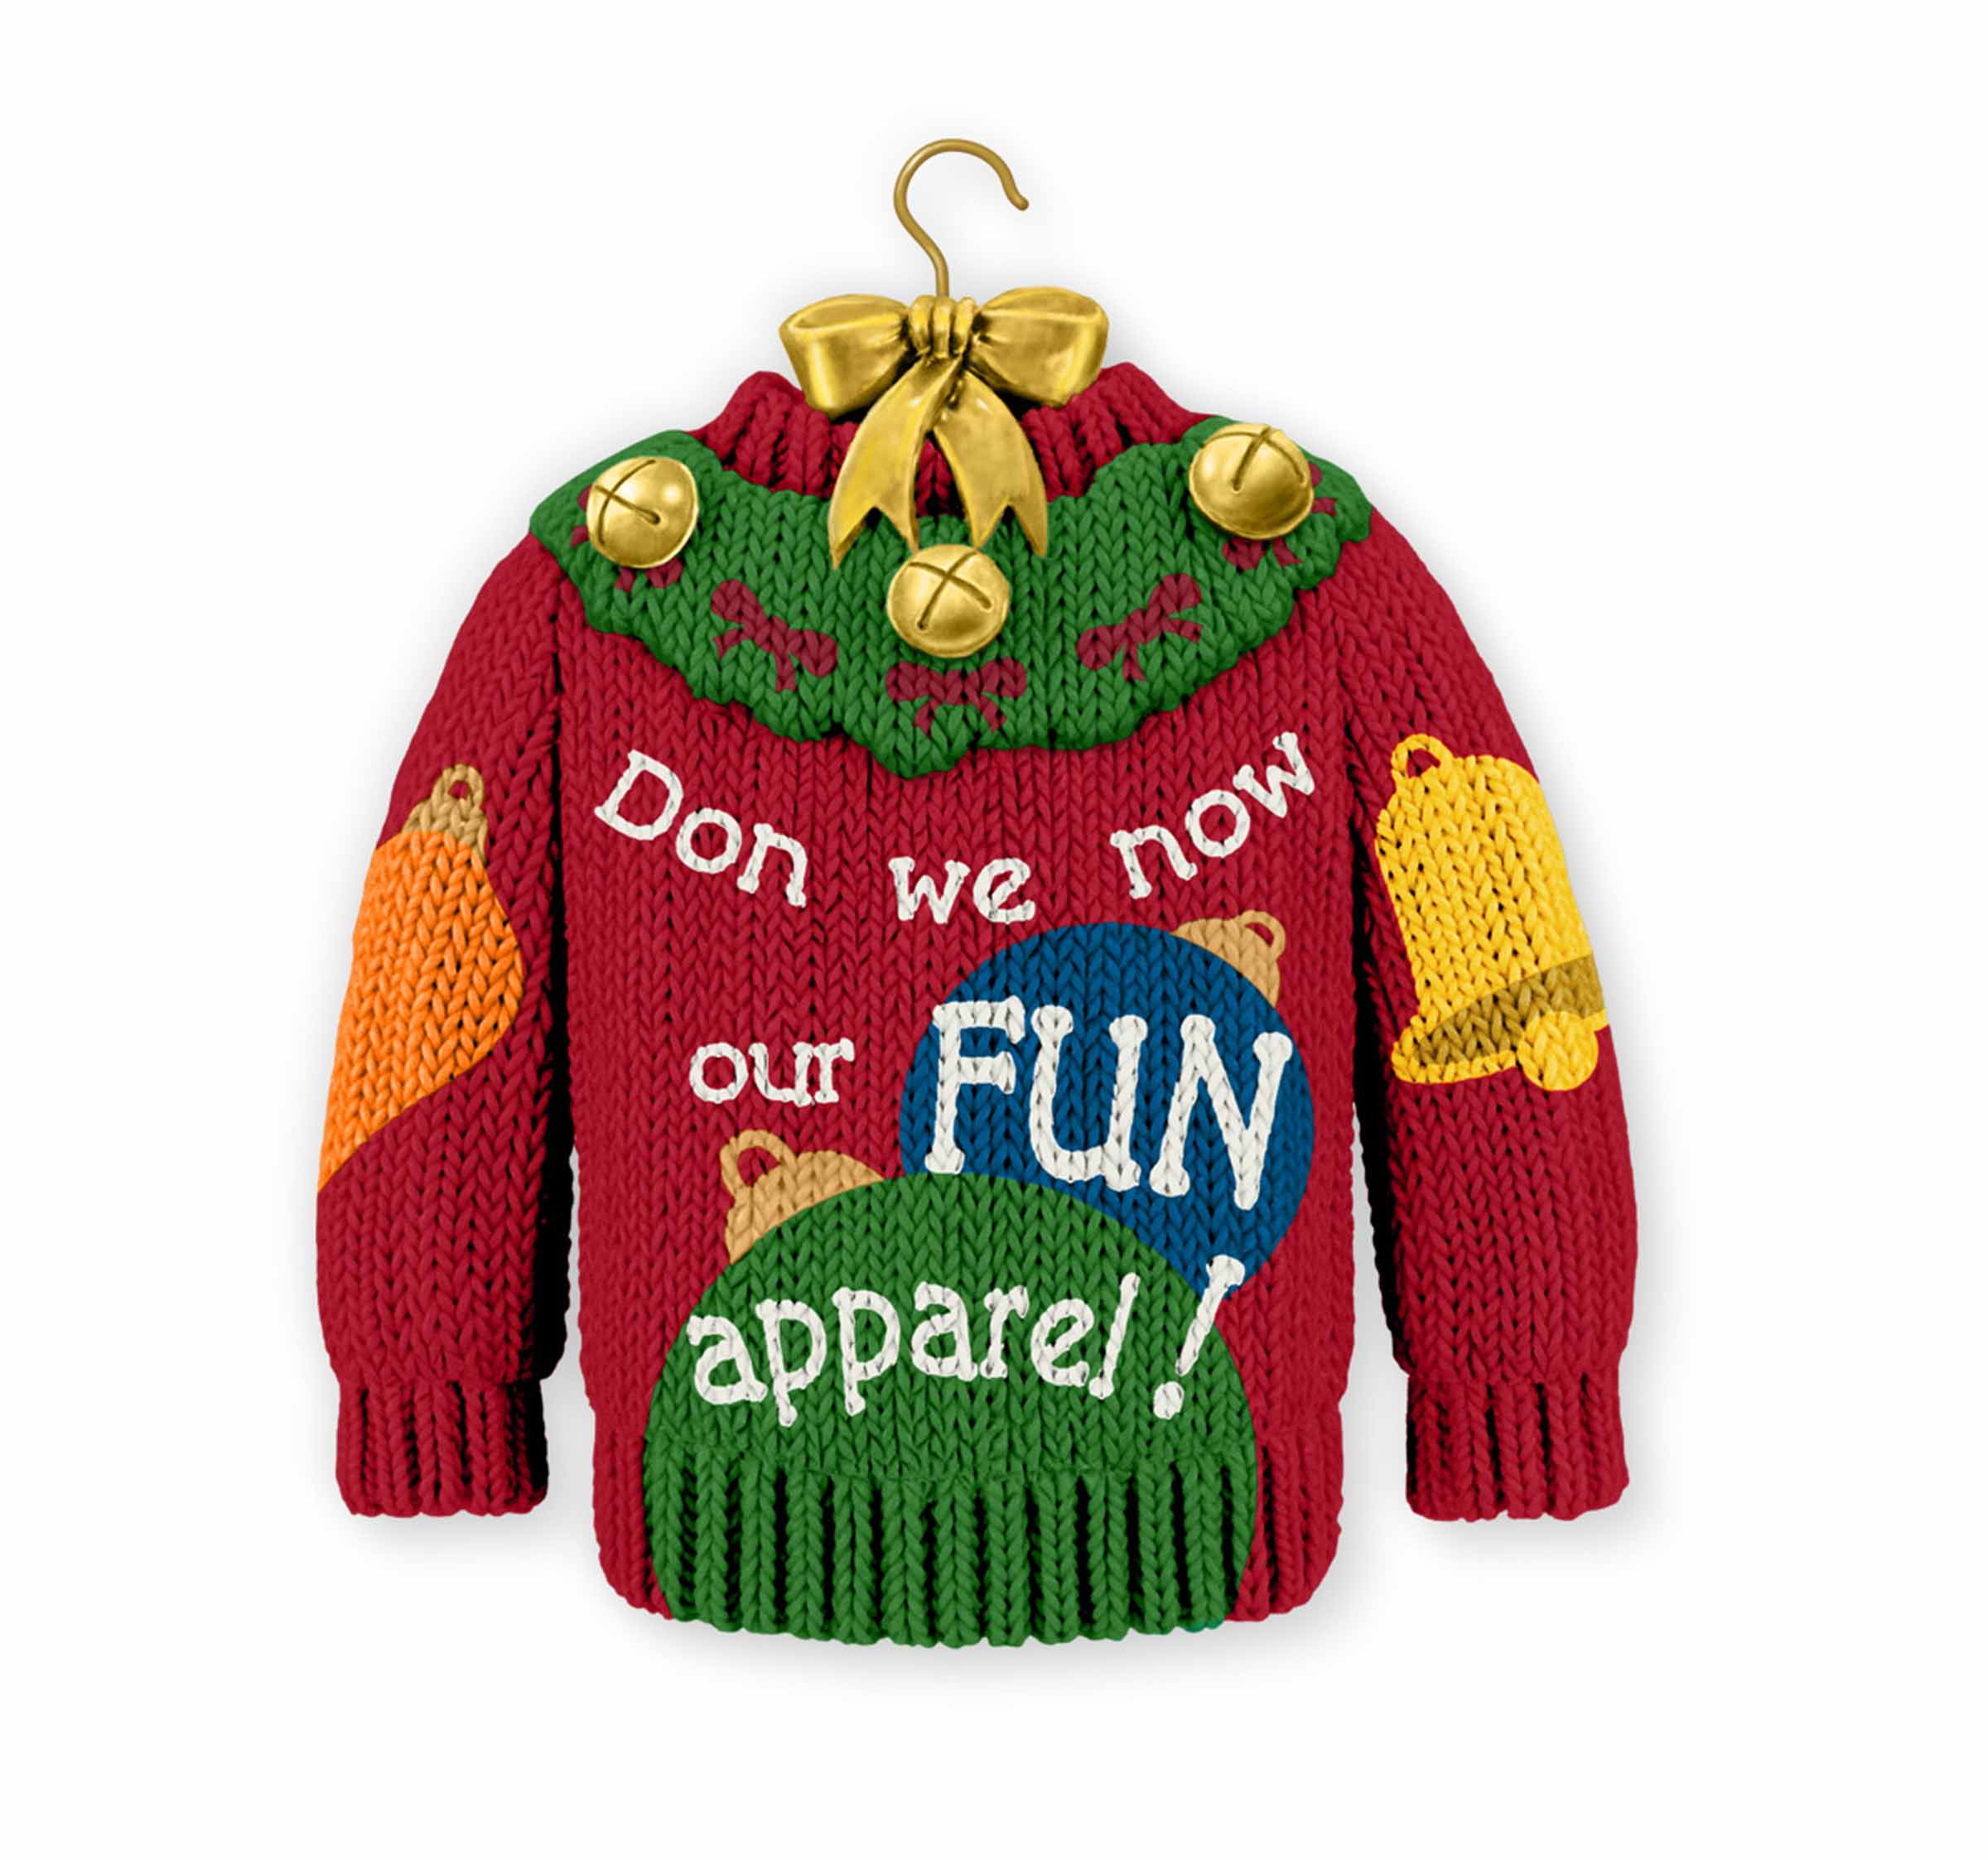 Hallmark s ugly sweater ornament stirs controversy